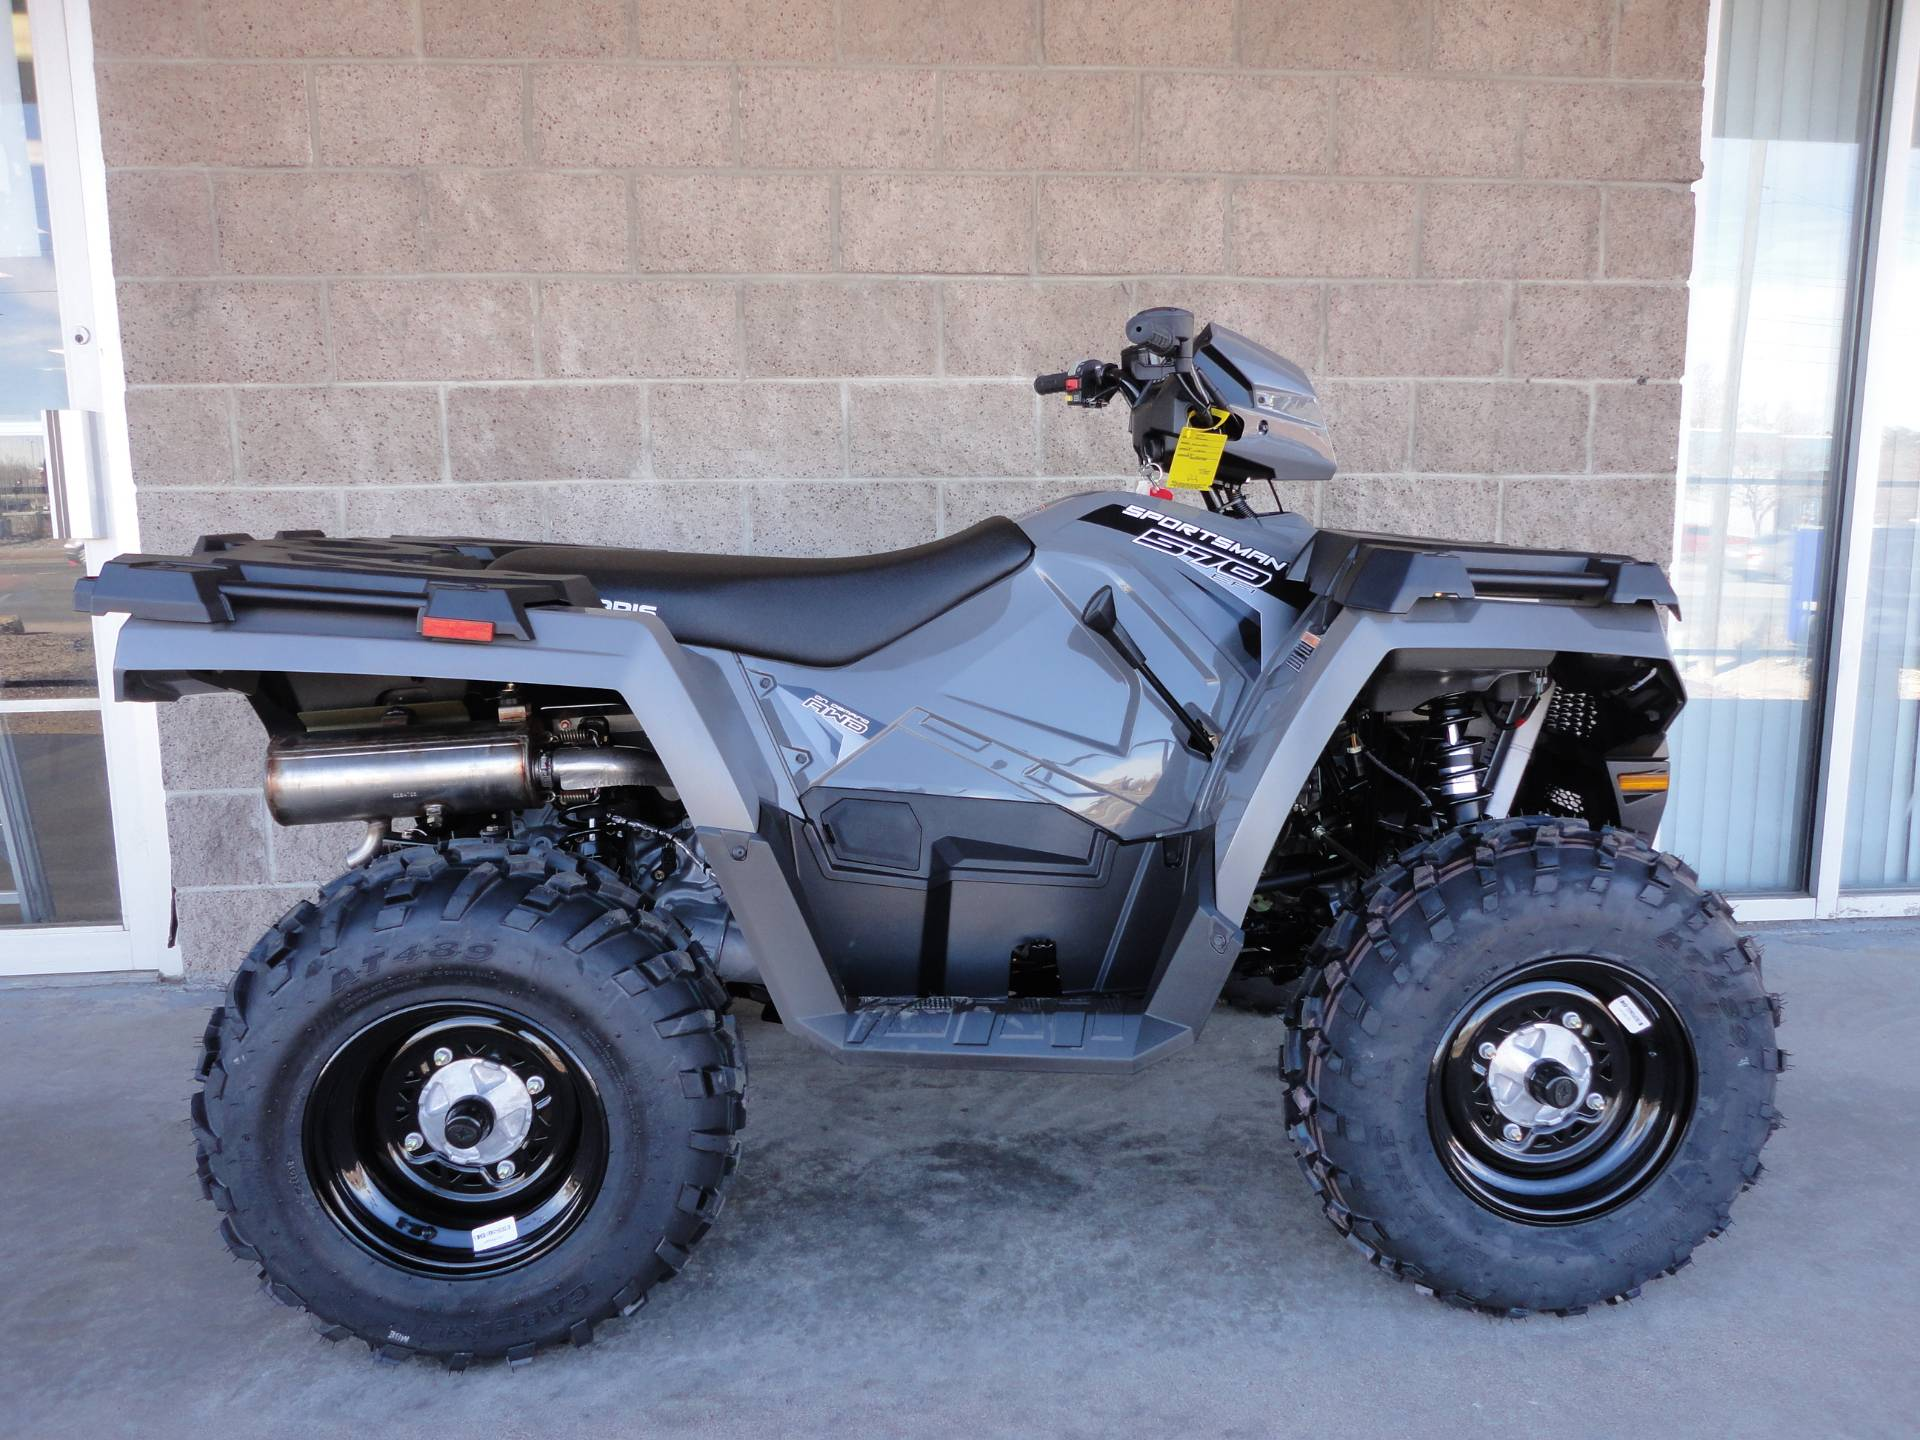 2020 Polaris Sportsman 570 in Denver, Colorado - Photo 2